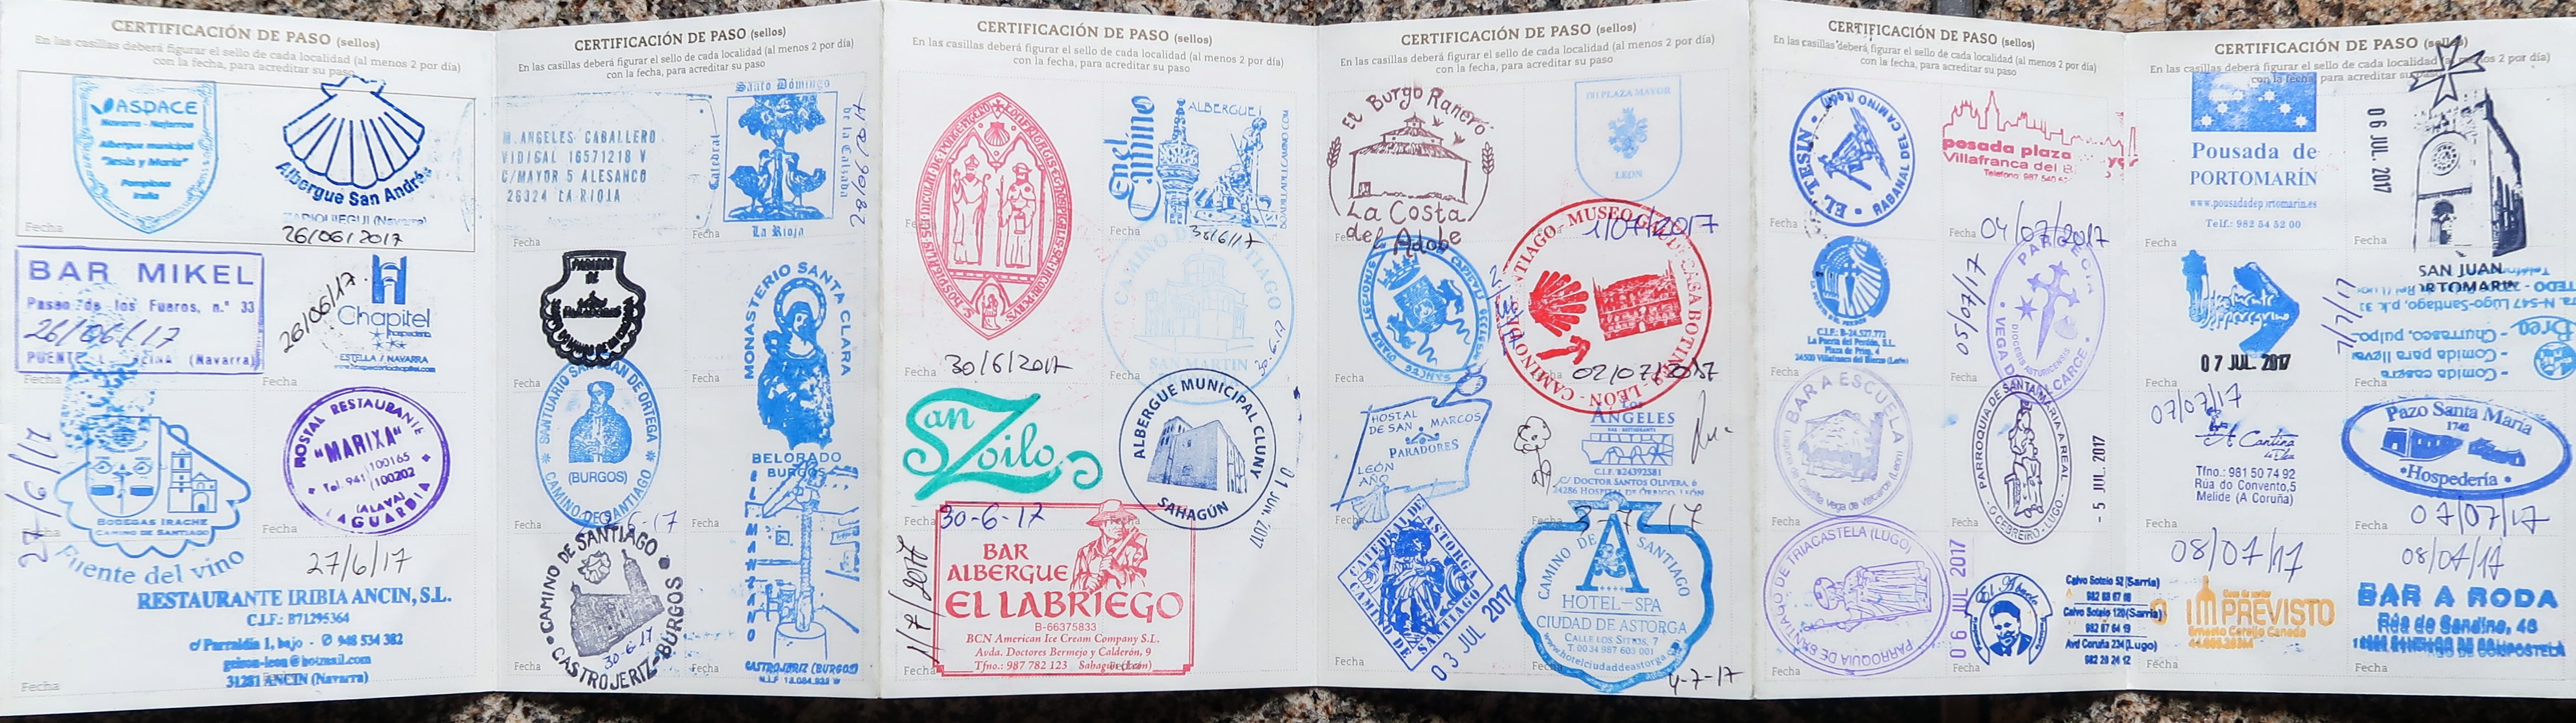 Bike Touring Story - First time cycling in Spain - camino credential